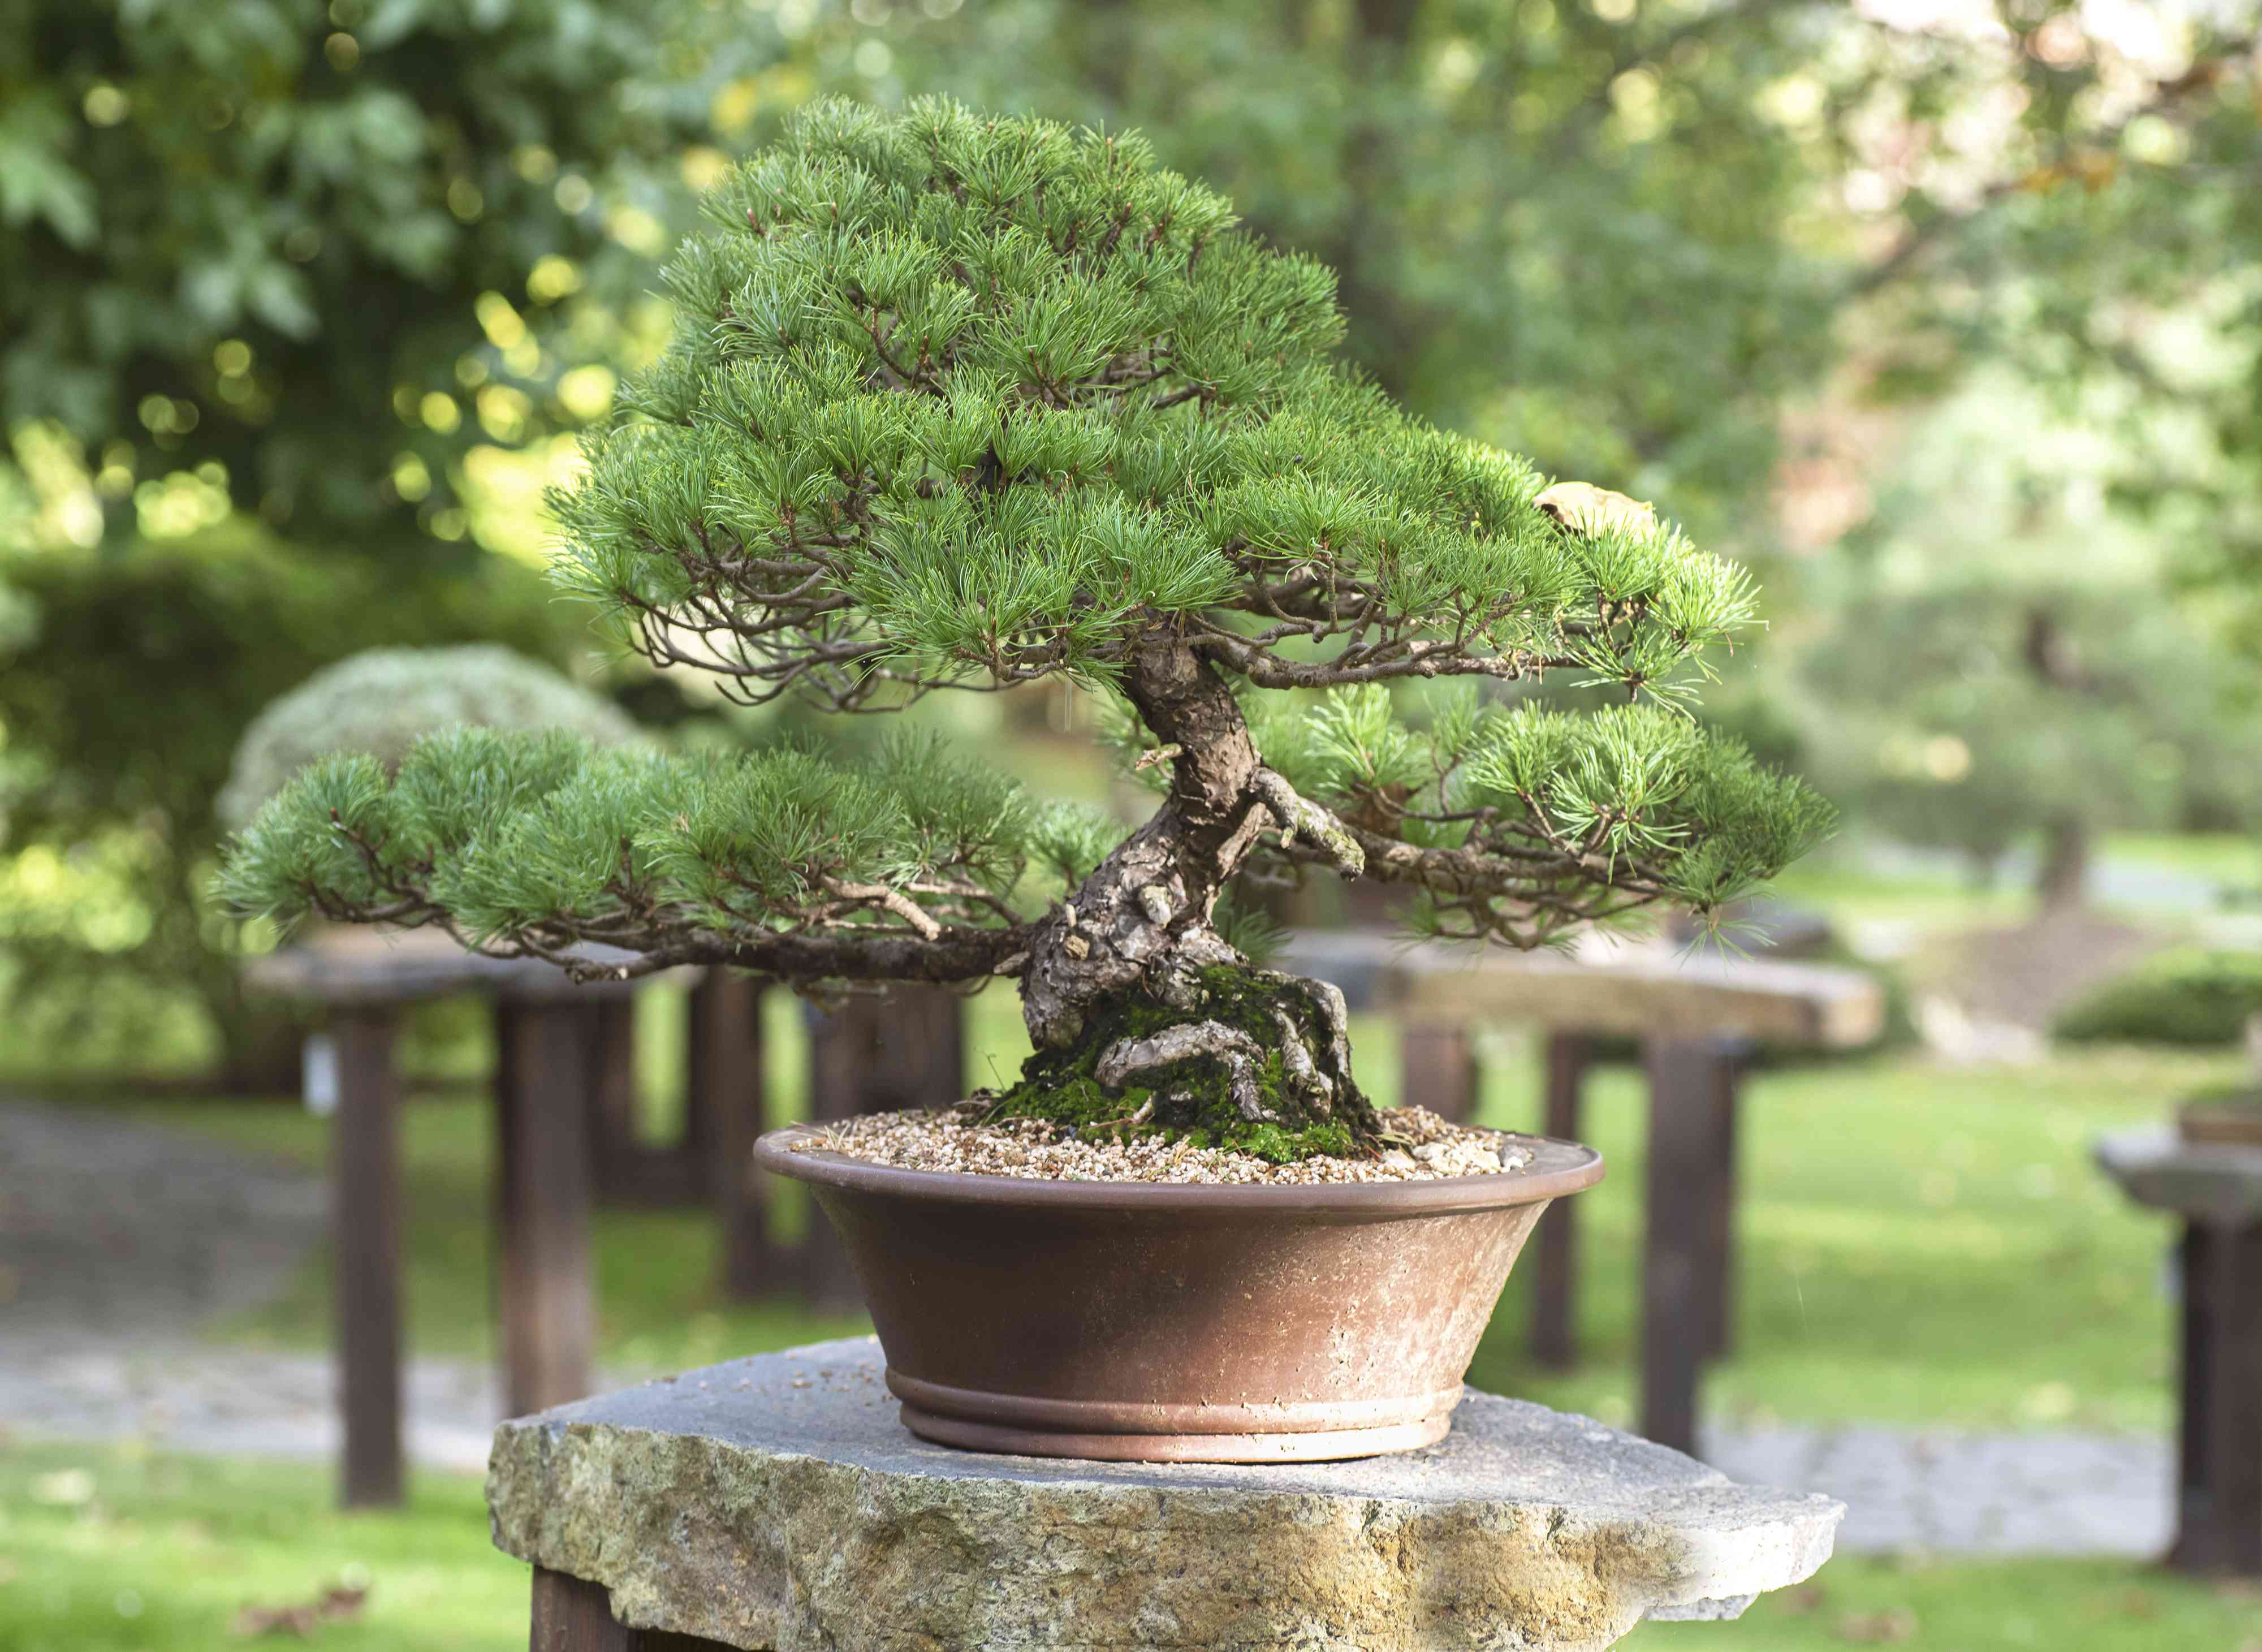 Pine bonsai tree in small brown clay pot on stone pedestal